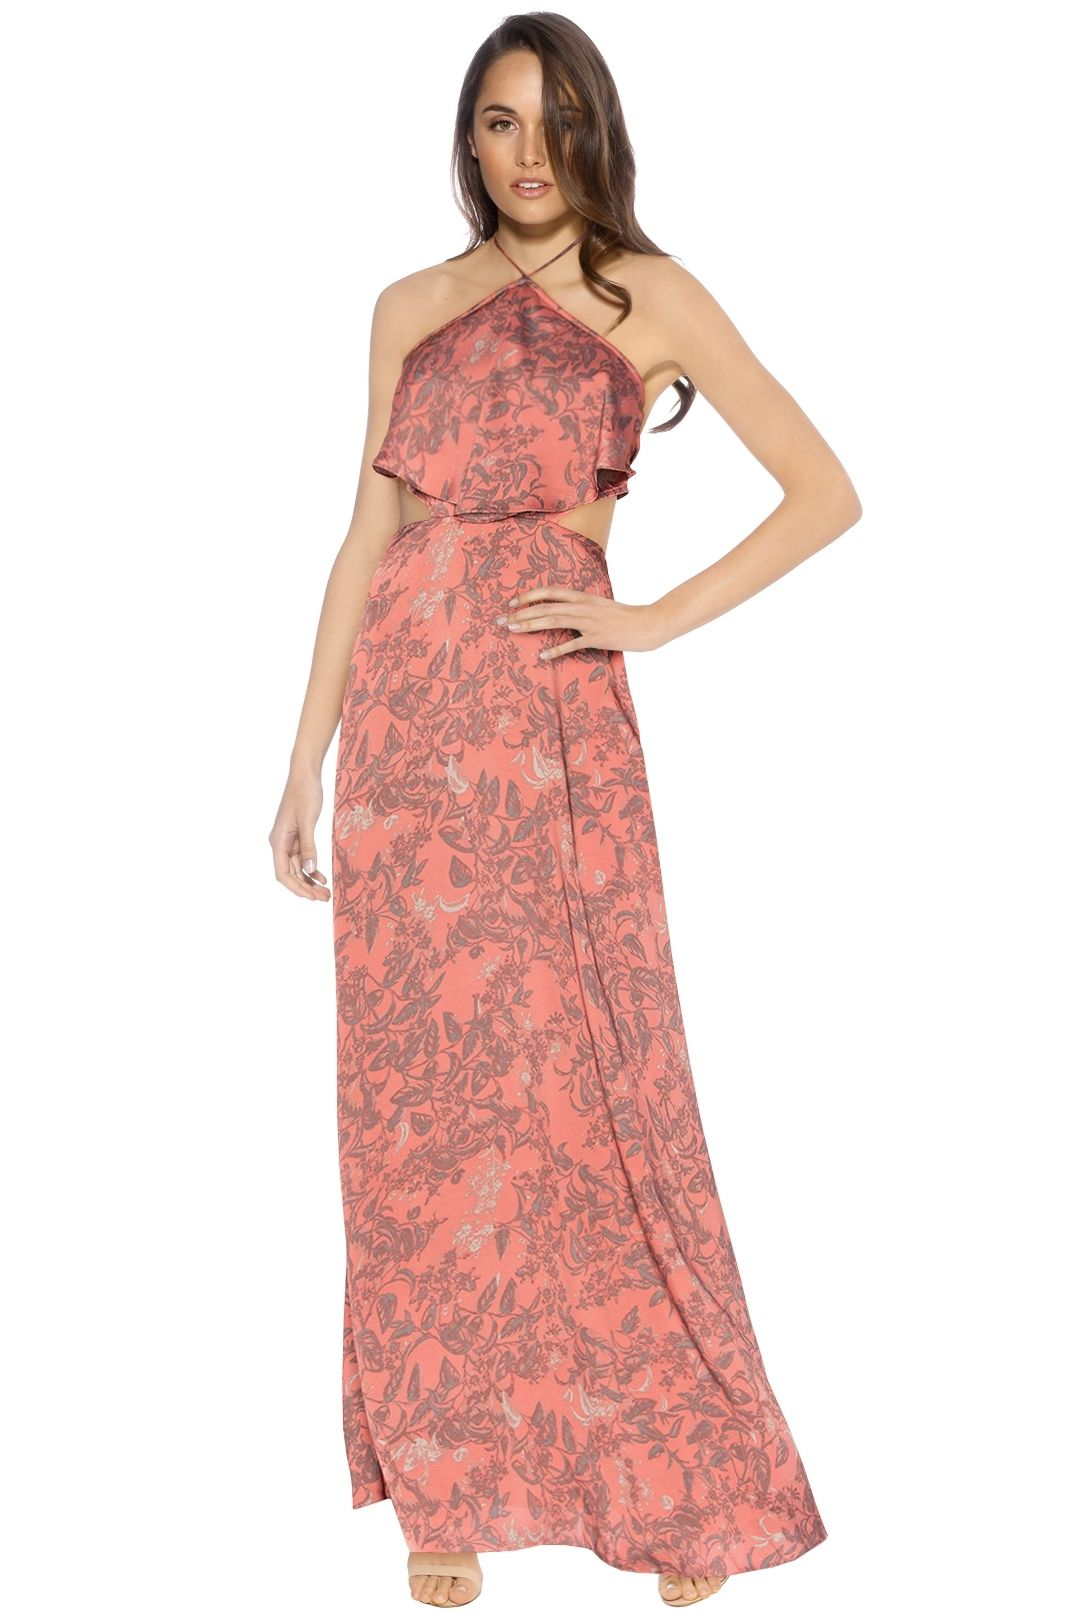 House of Harlow - Zoe Halter Dress - Pink - Front